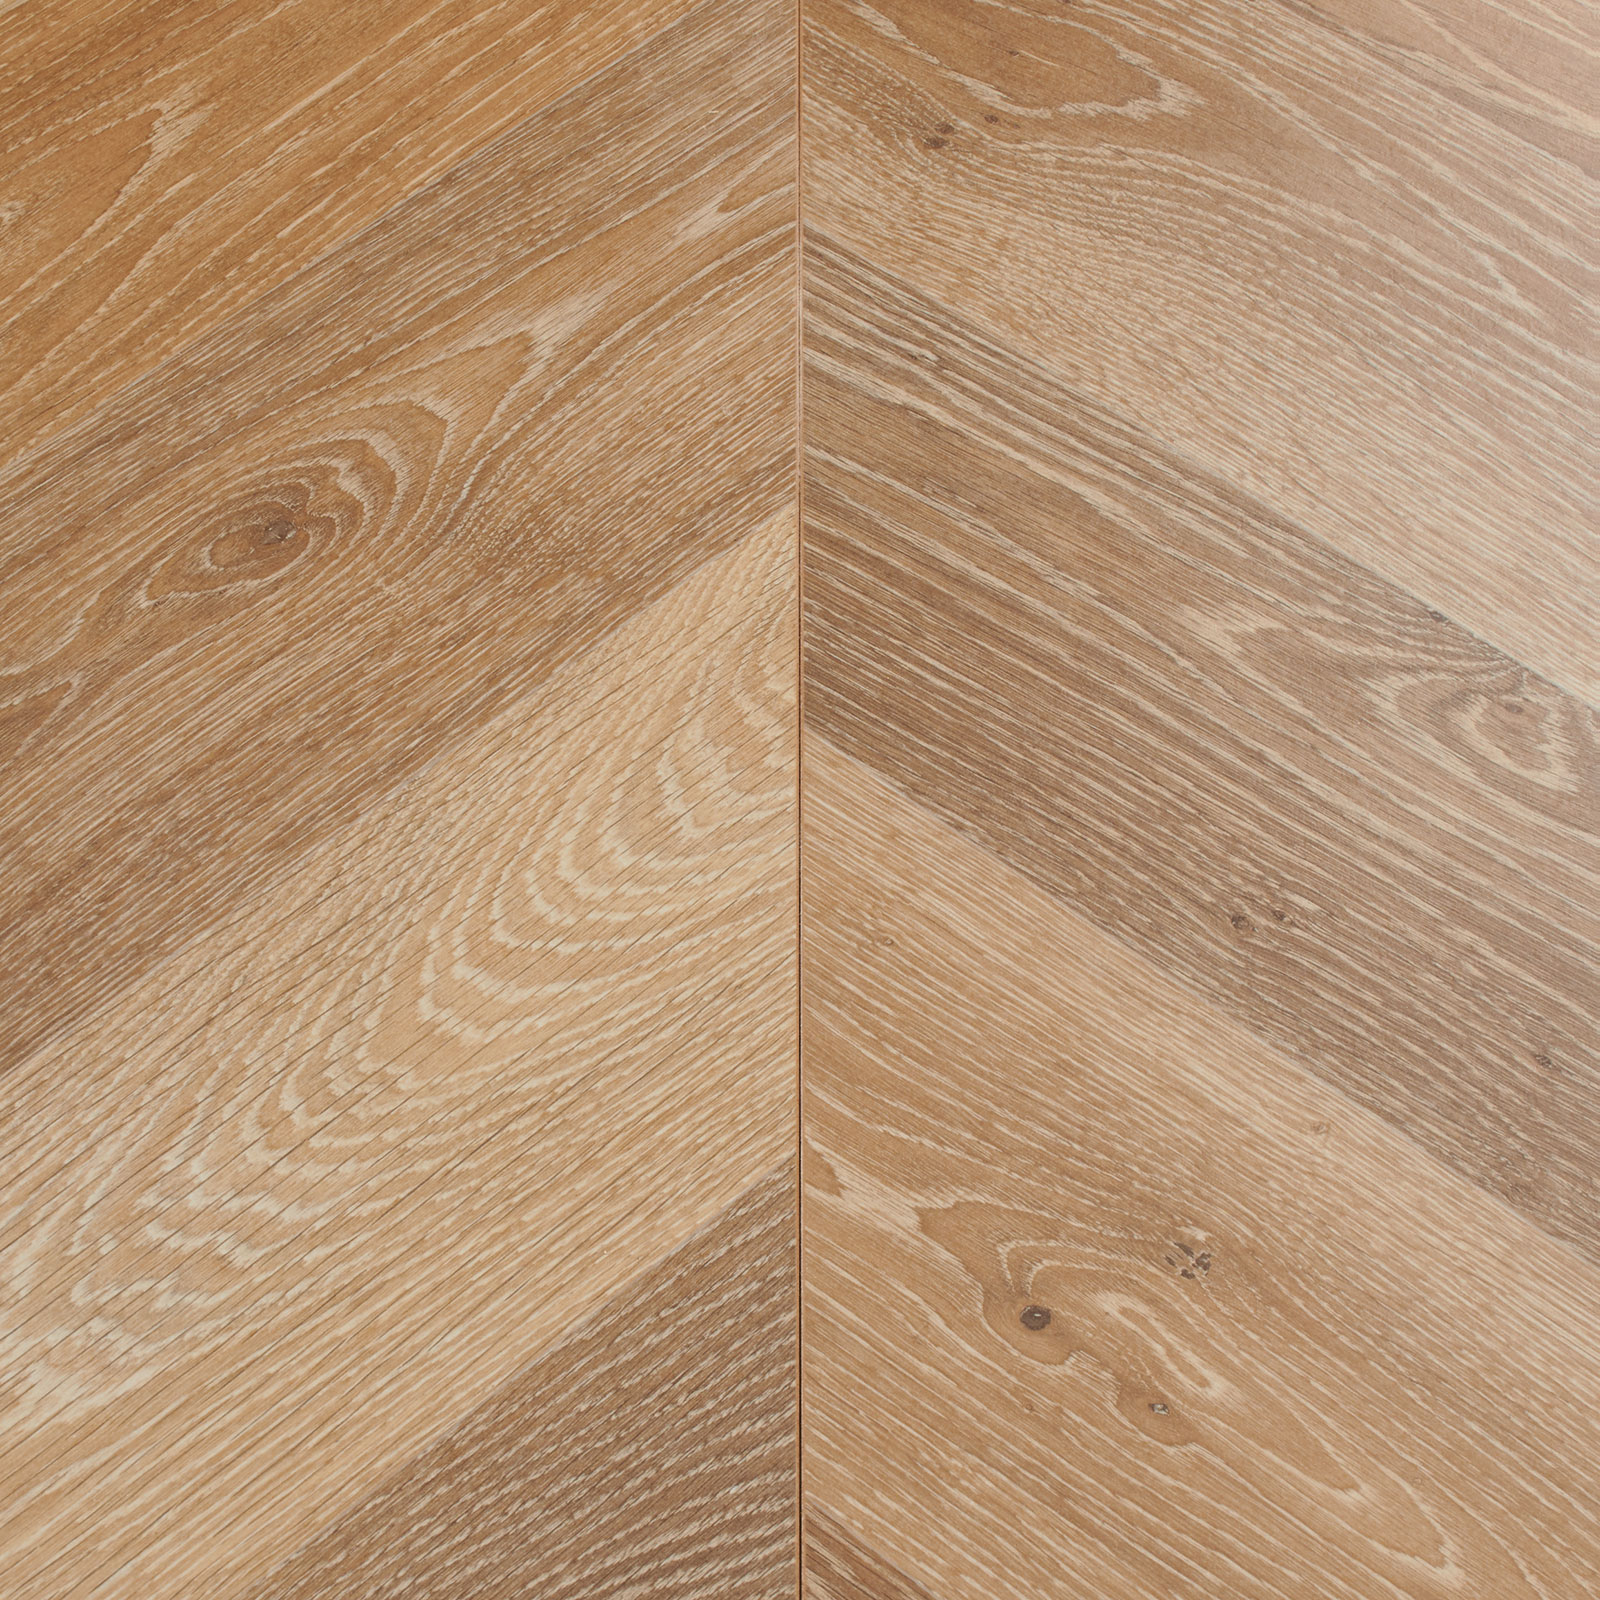 Wembury-Honey-Oak-swatch.jpg